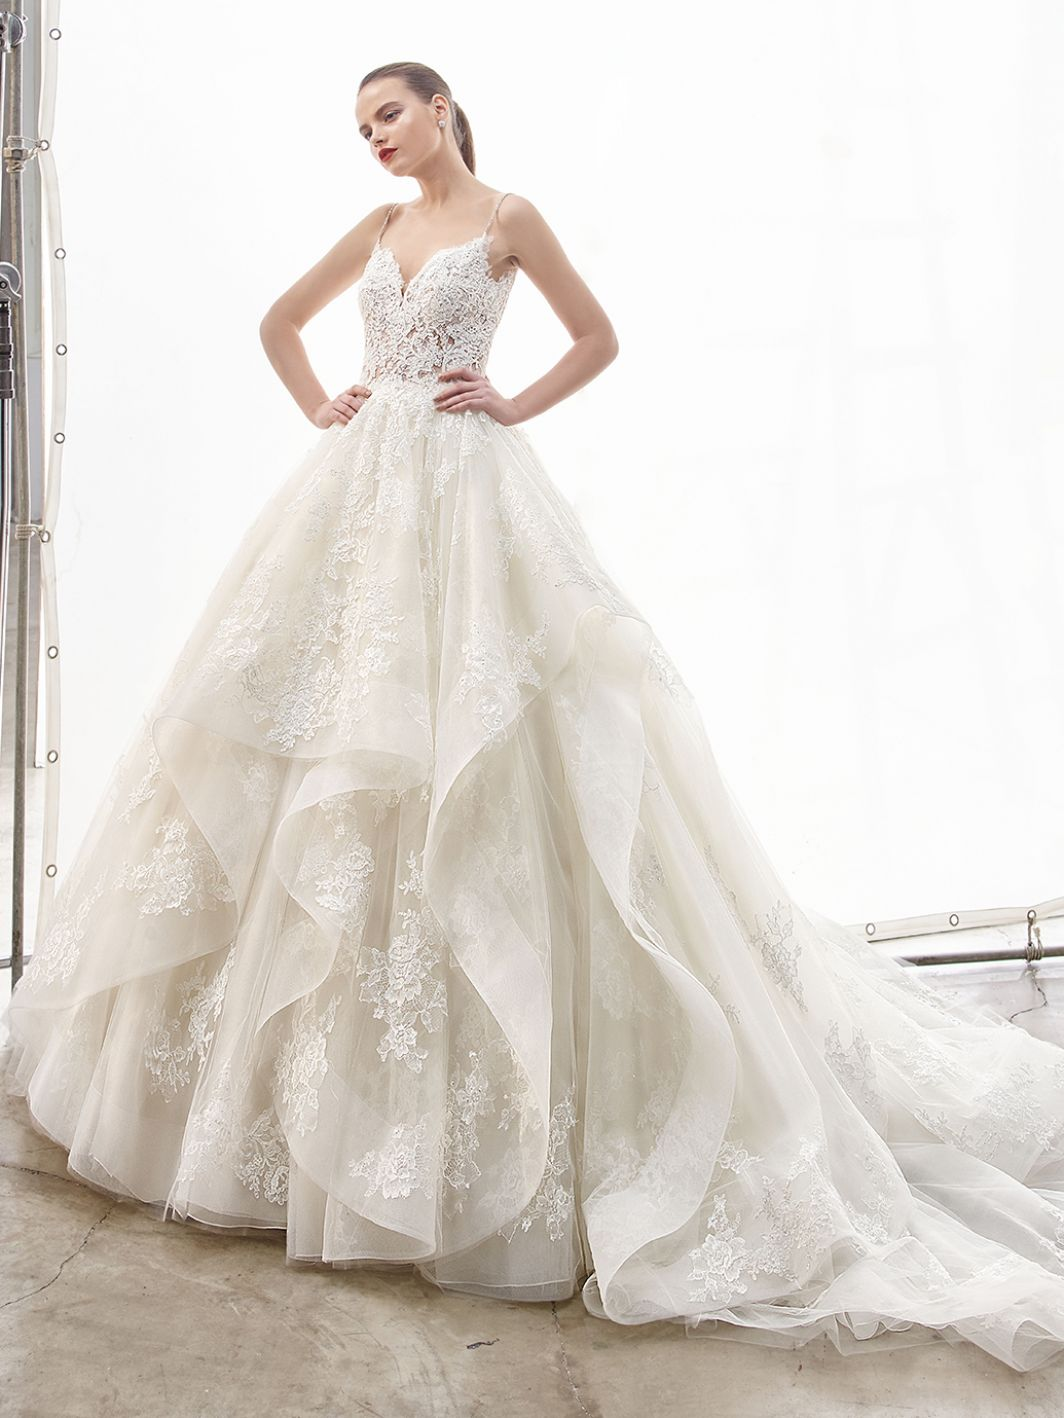 The Most Fitting Wedding Dress Style For Your Body Shape Sacramento Wedding Dresses Miosa Bride